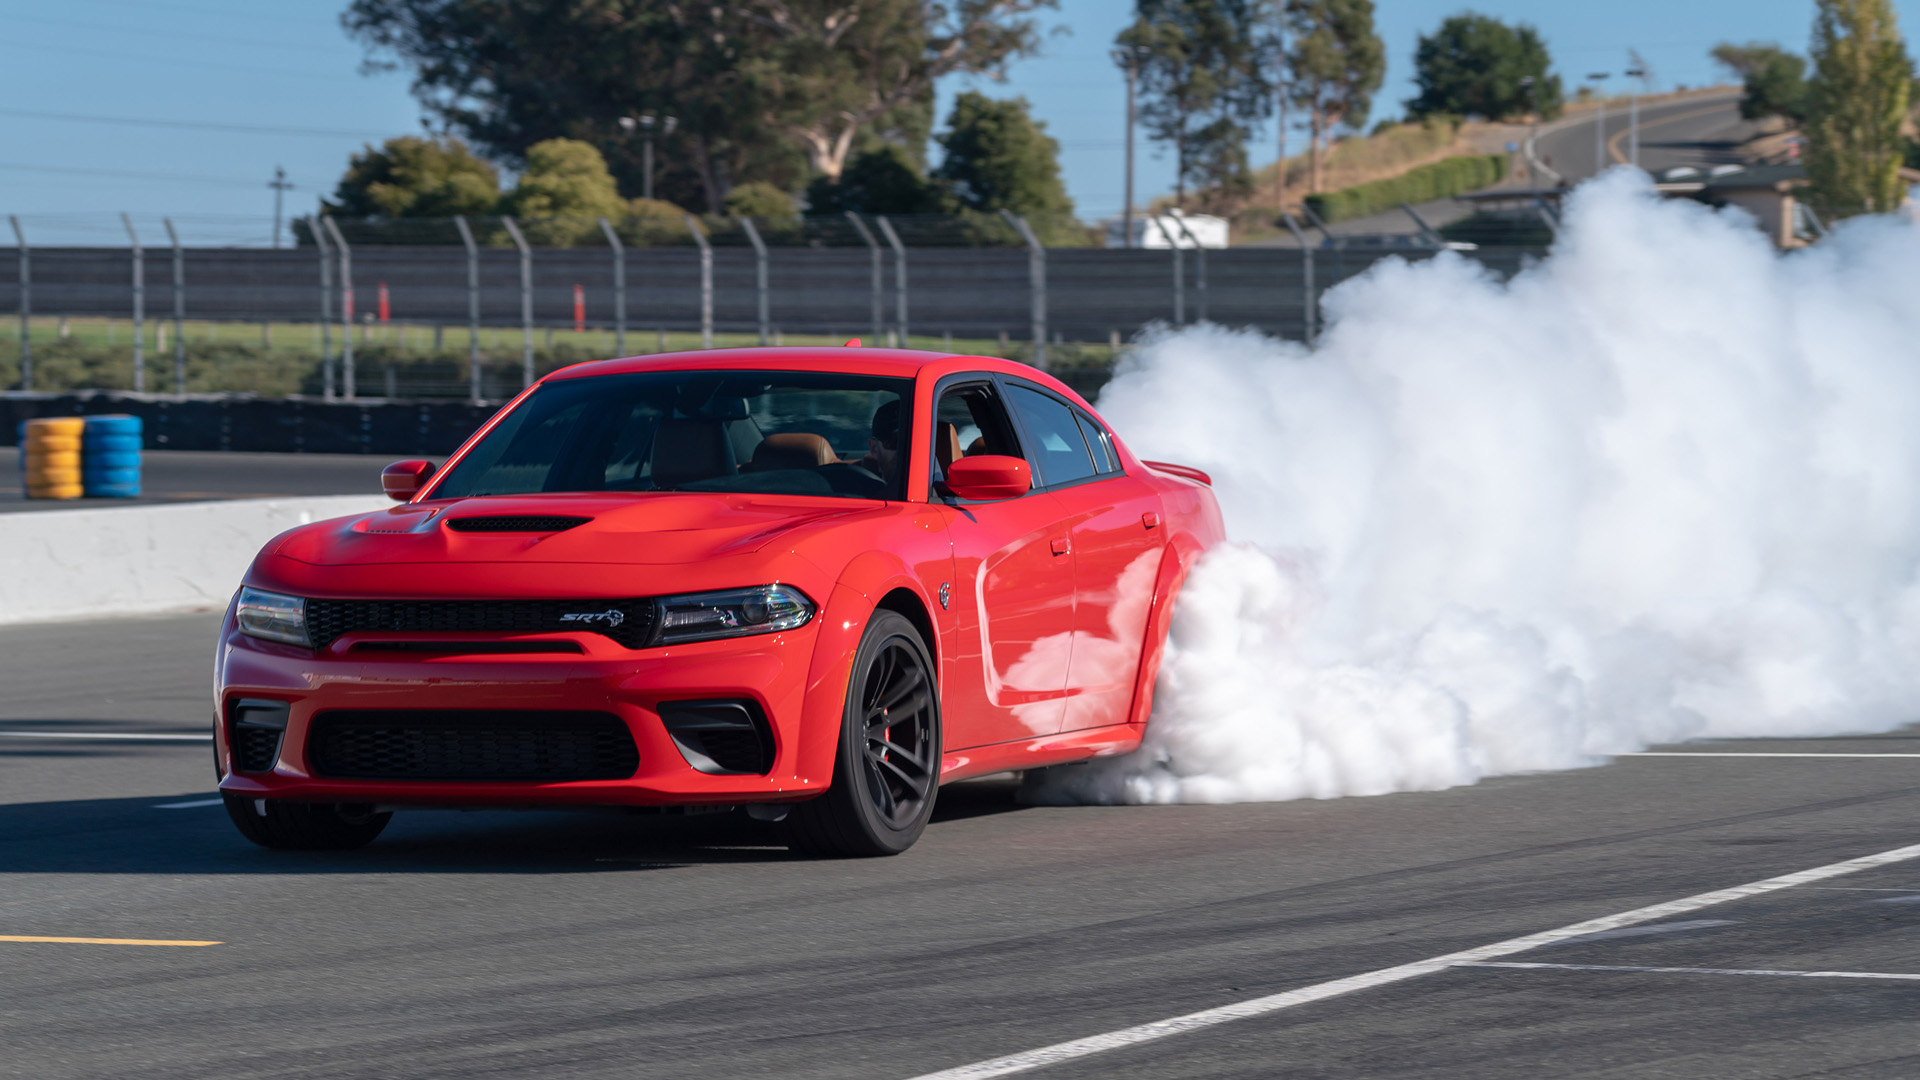 Dodge Charger Srt Hellcat Redeye Widebody Expected For 2021 Rk Motors Classic Cars And Muscle Cars For Sale